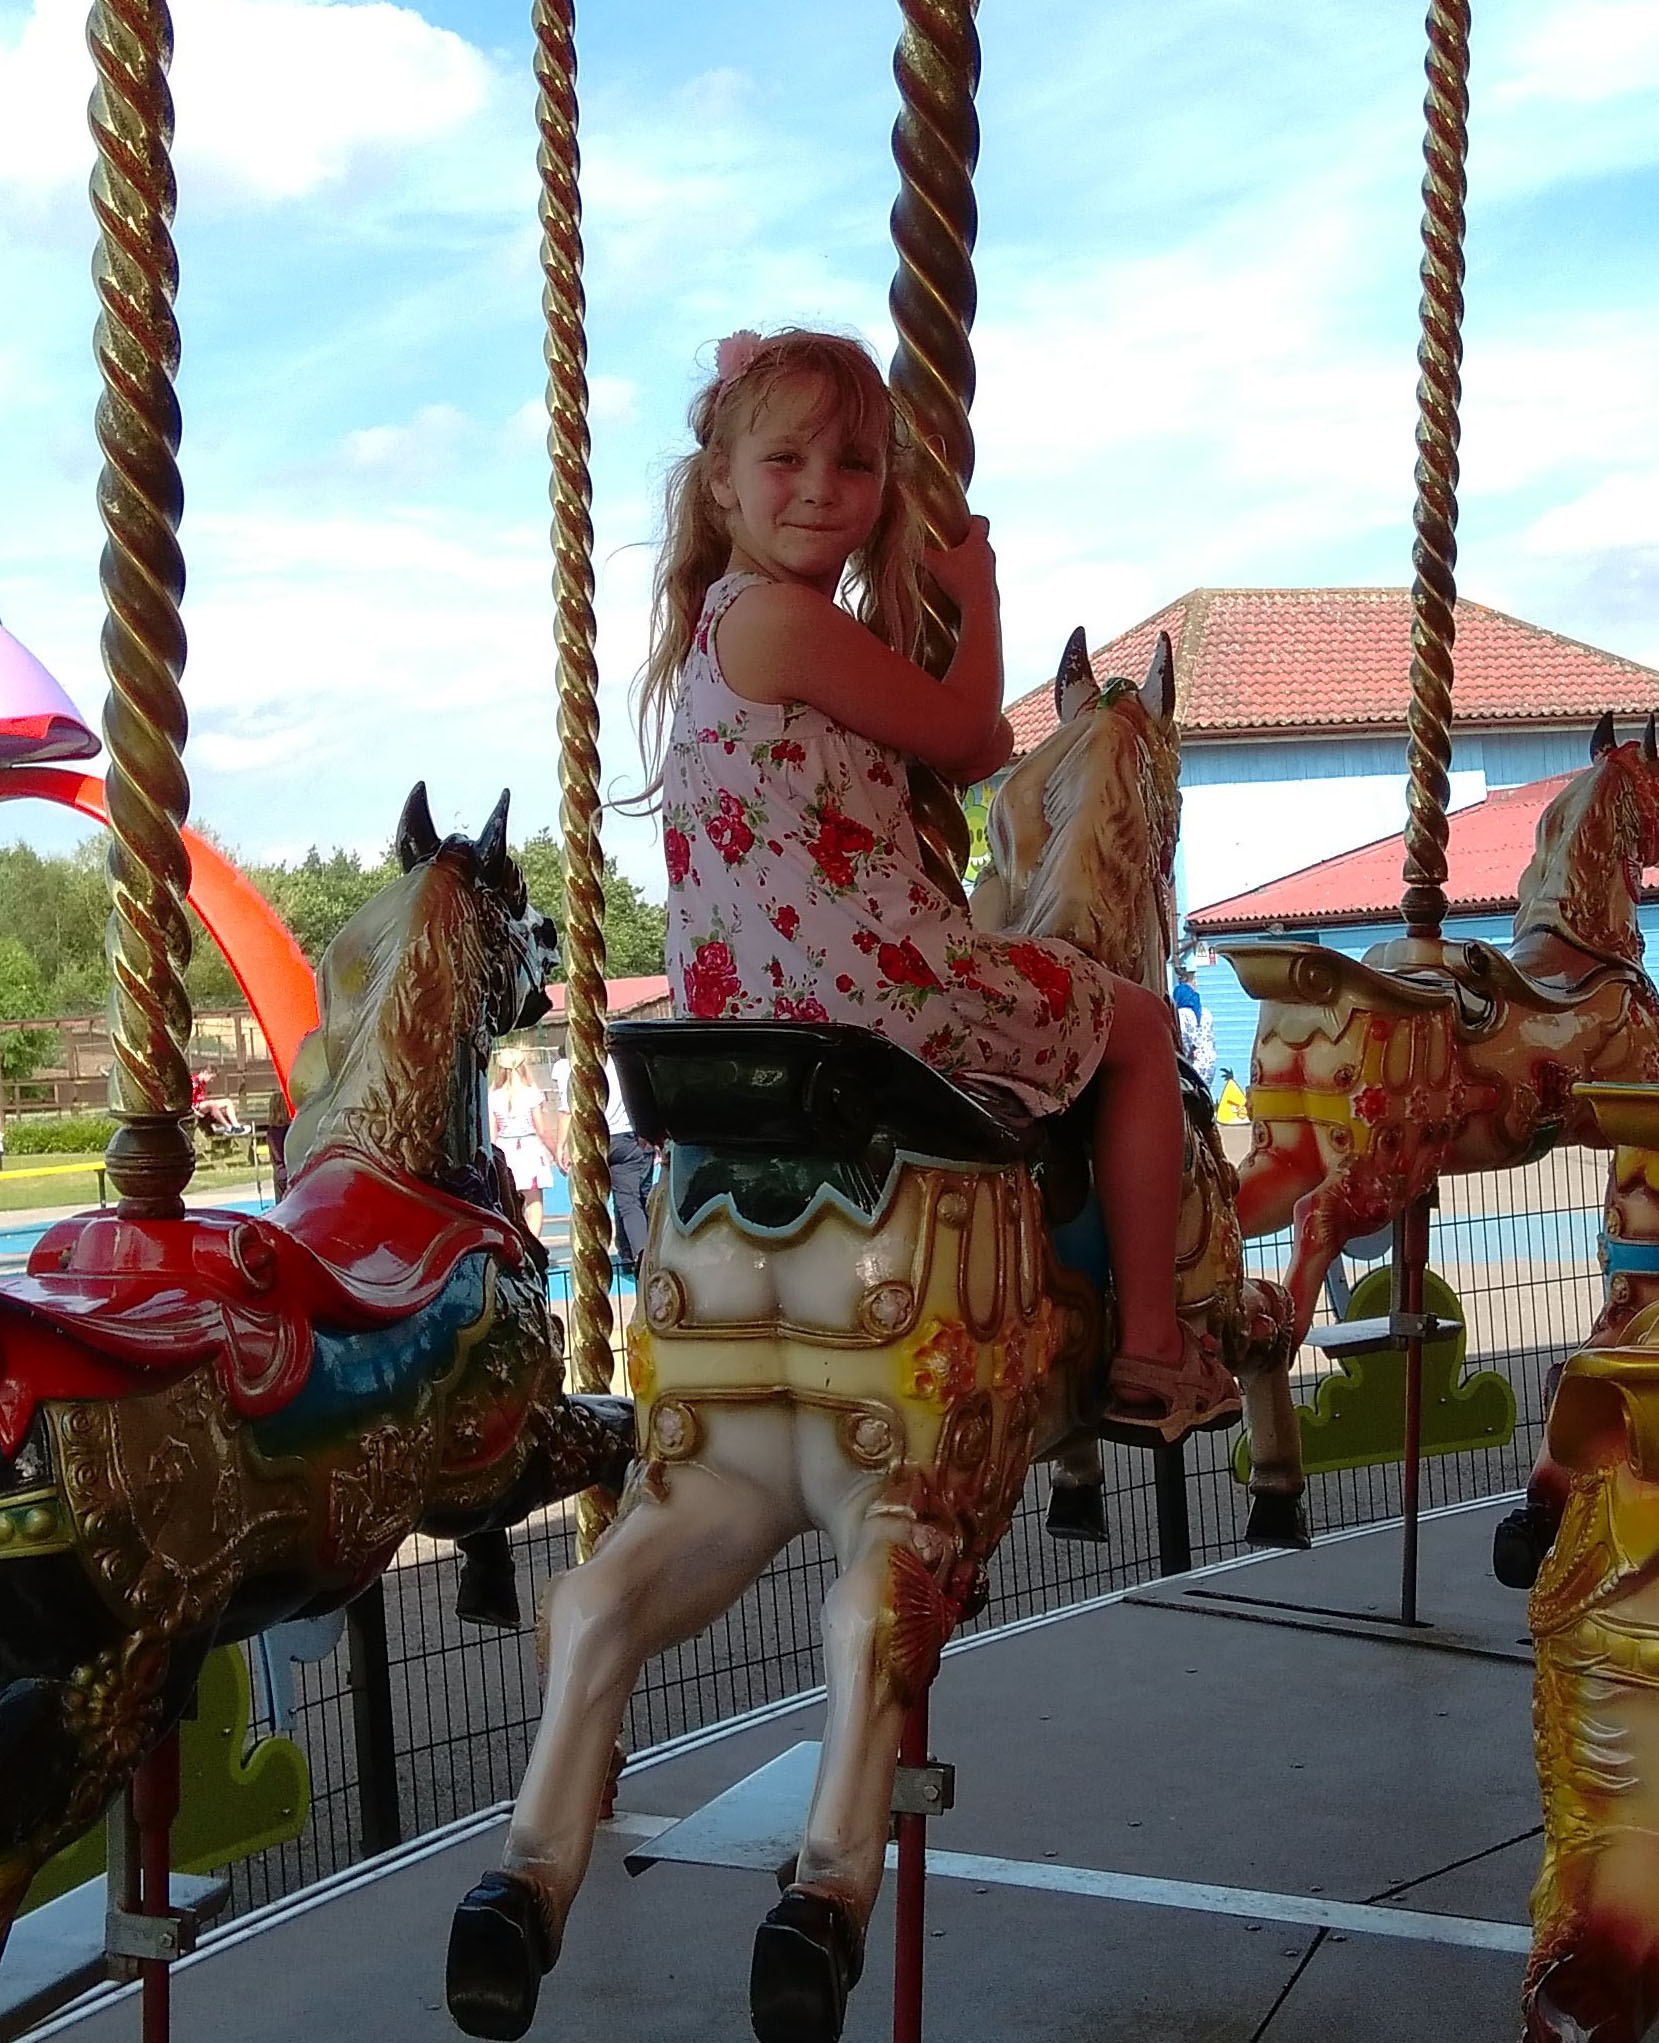 lightwater valley carousel